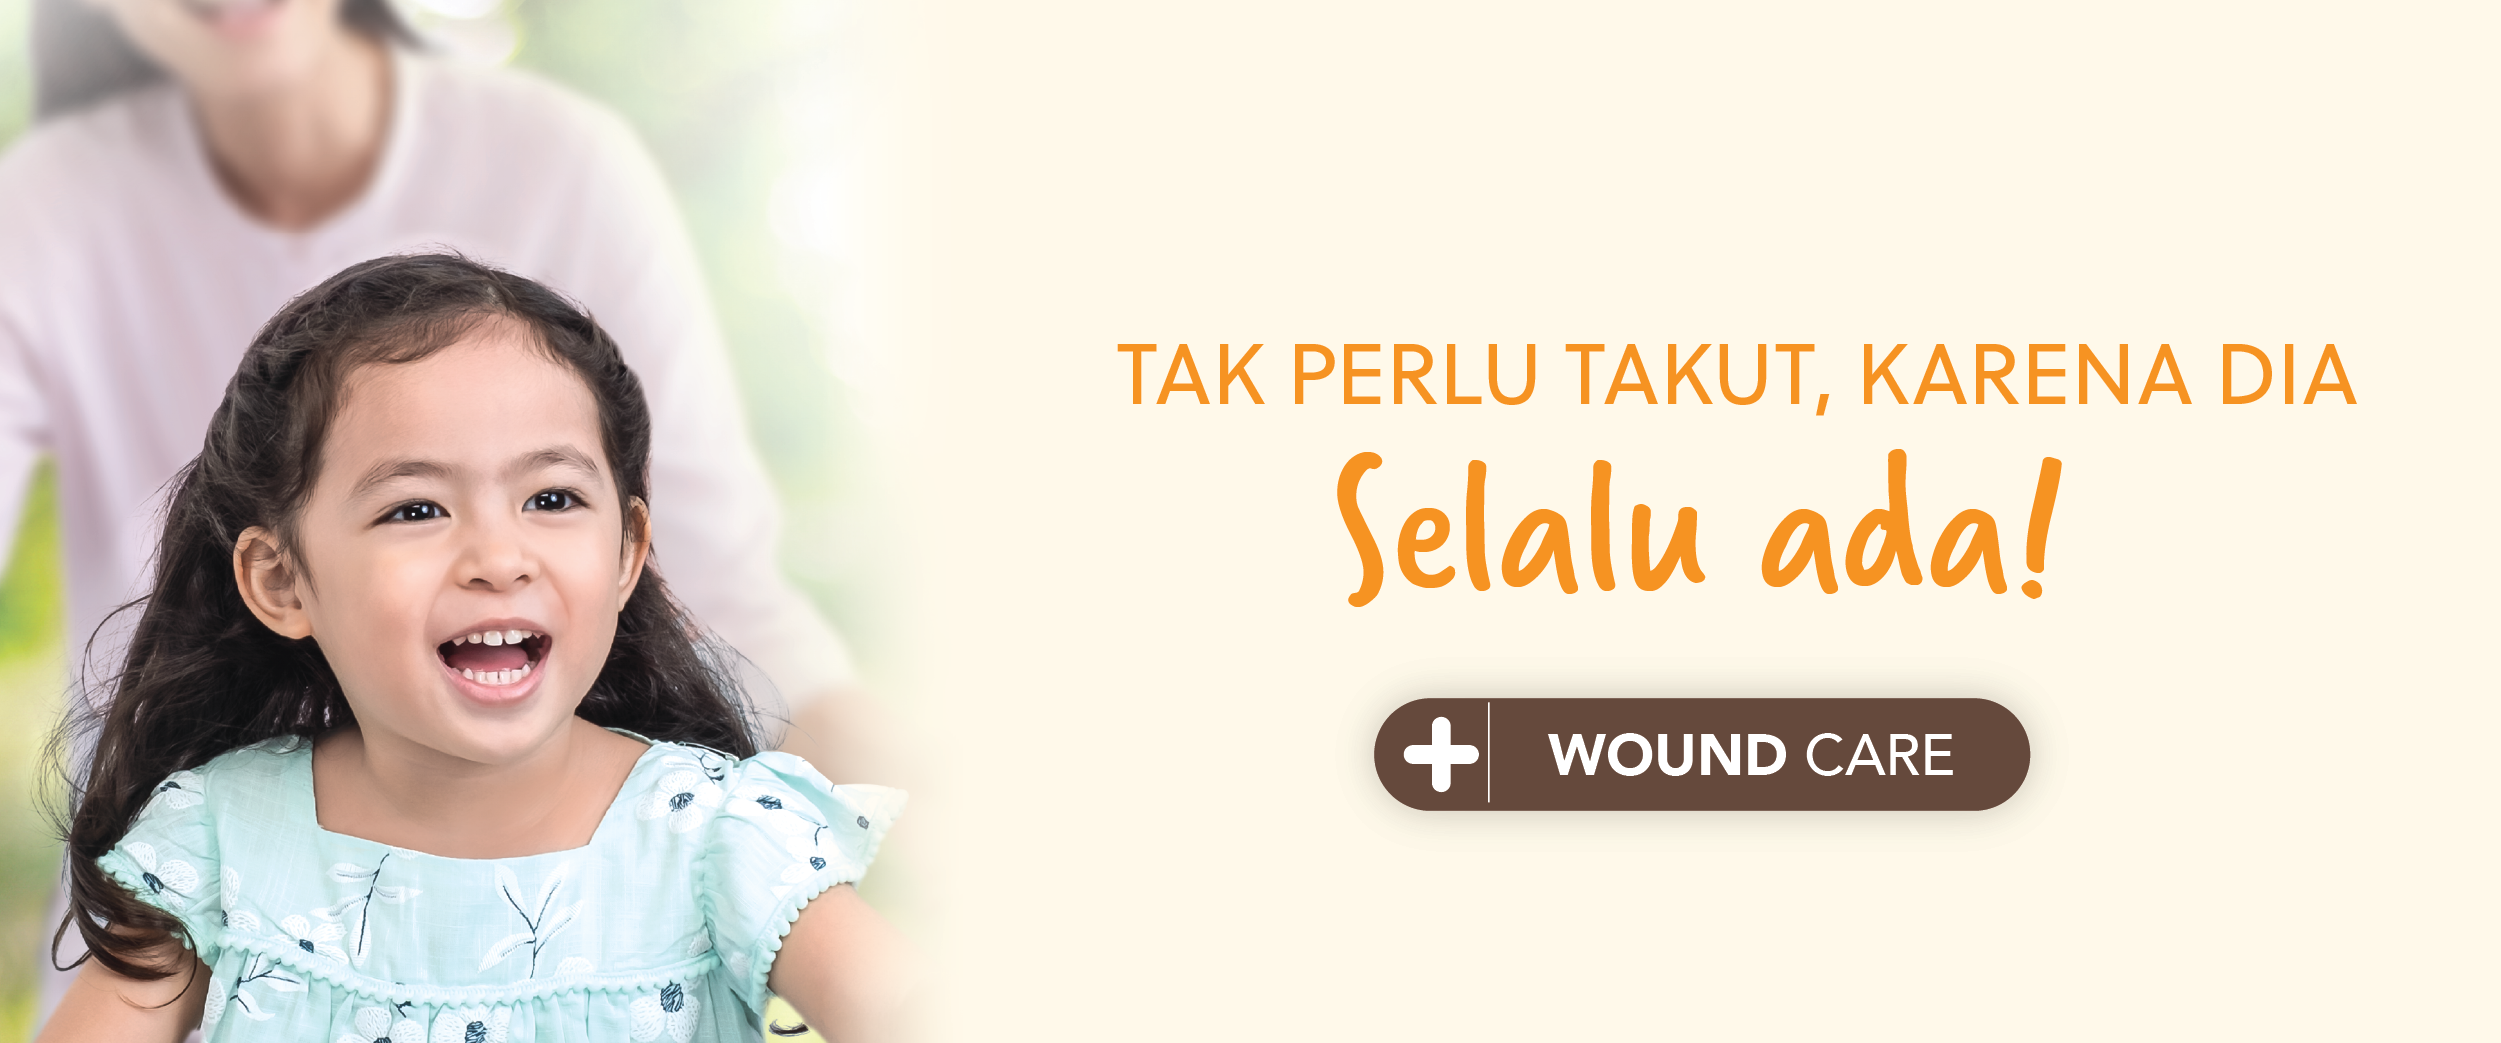 Wound Care Detail